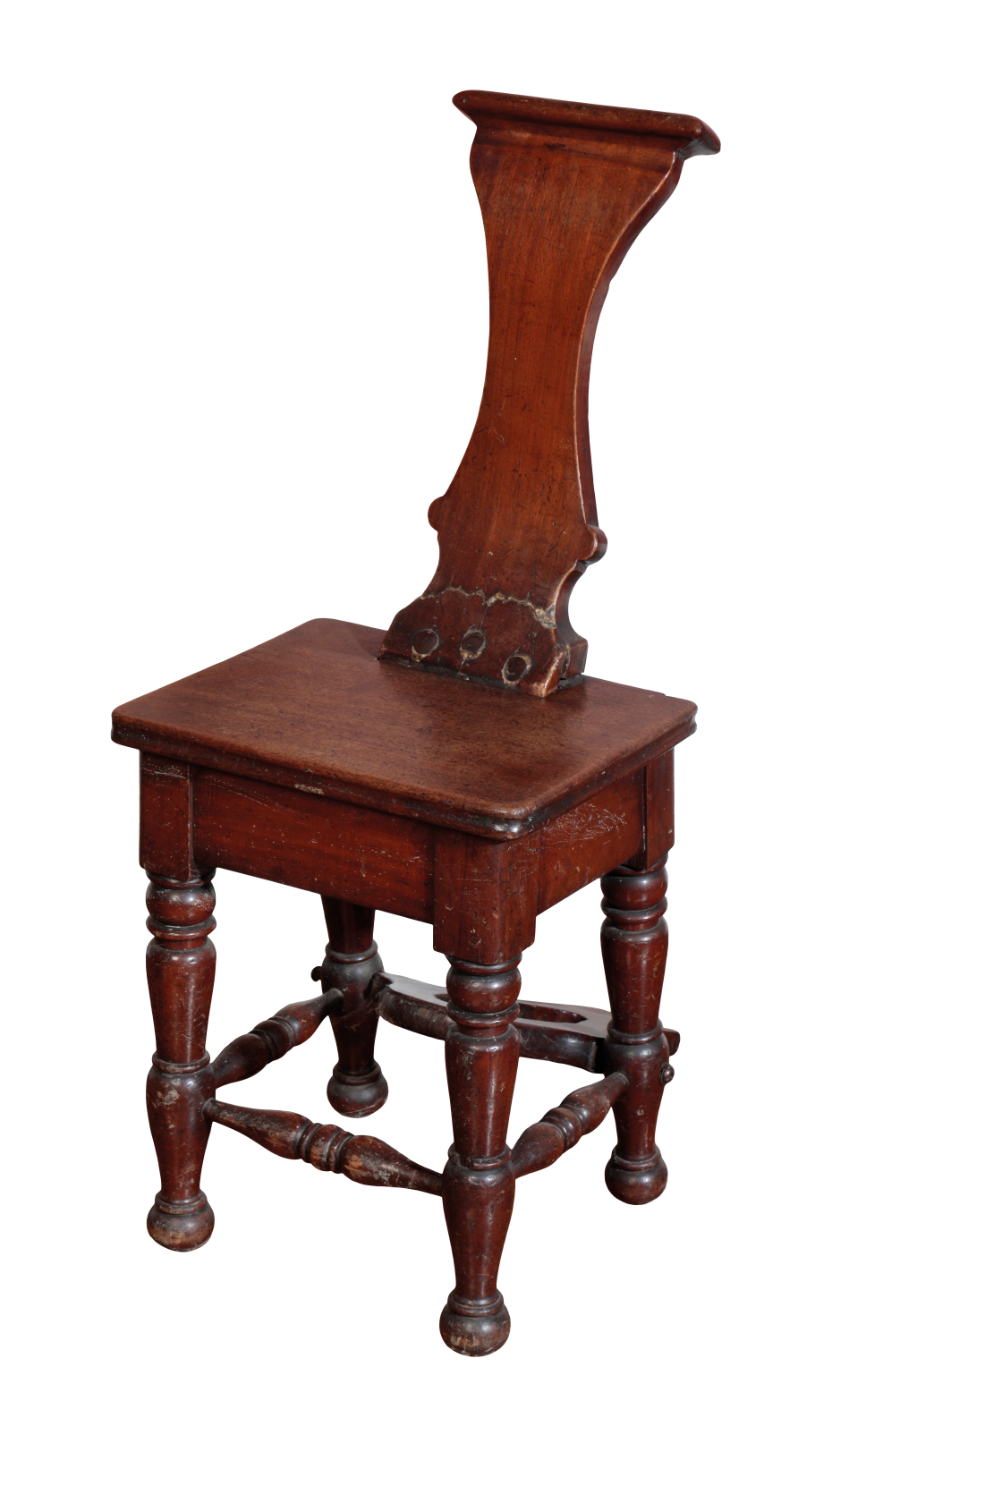 A GEORGE IV MAHOGANY AND WALNUT HALL CHAIR BOOT-PULL, - Image 2 of 2